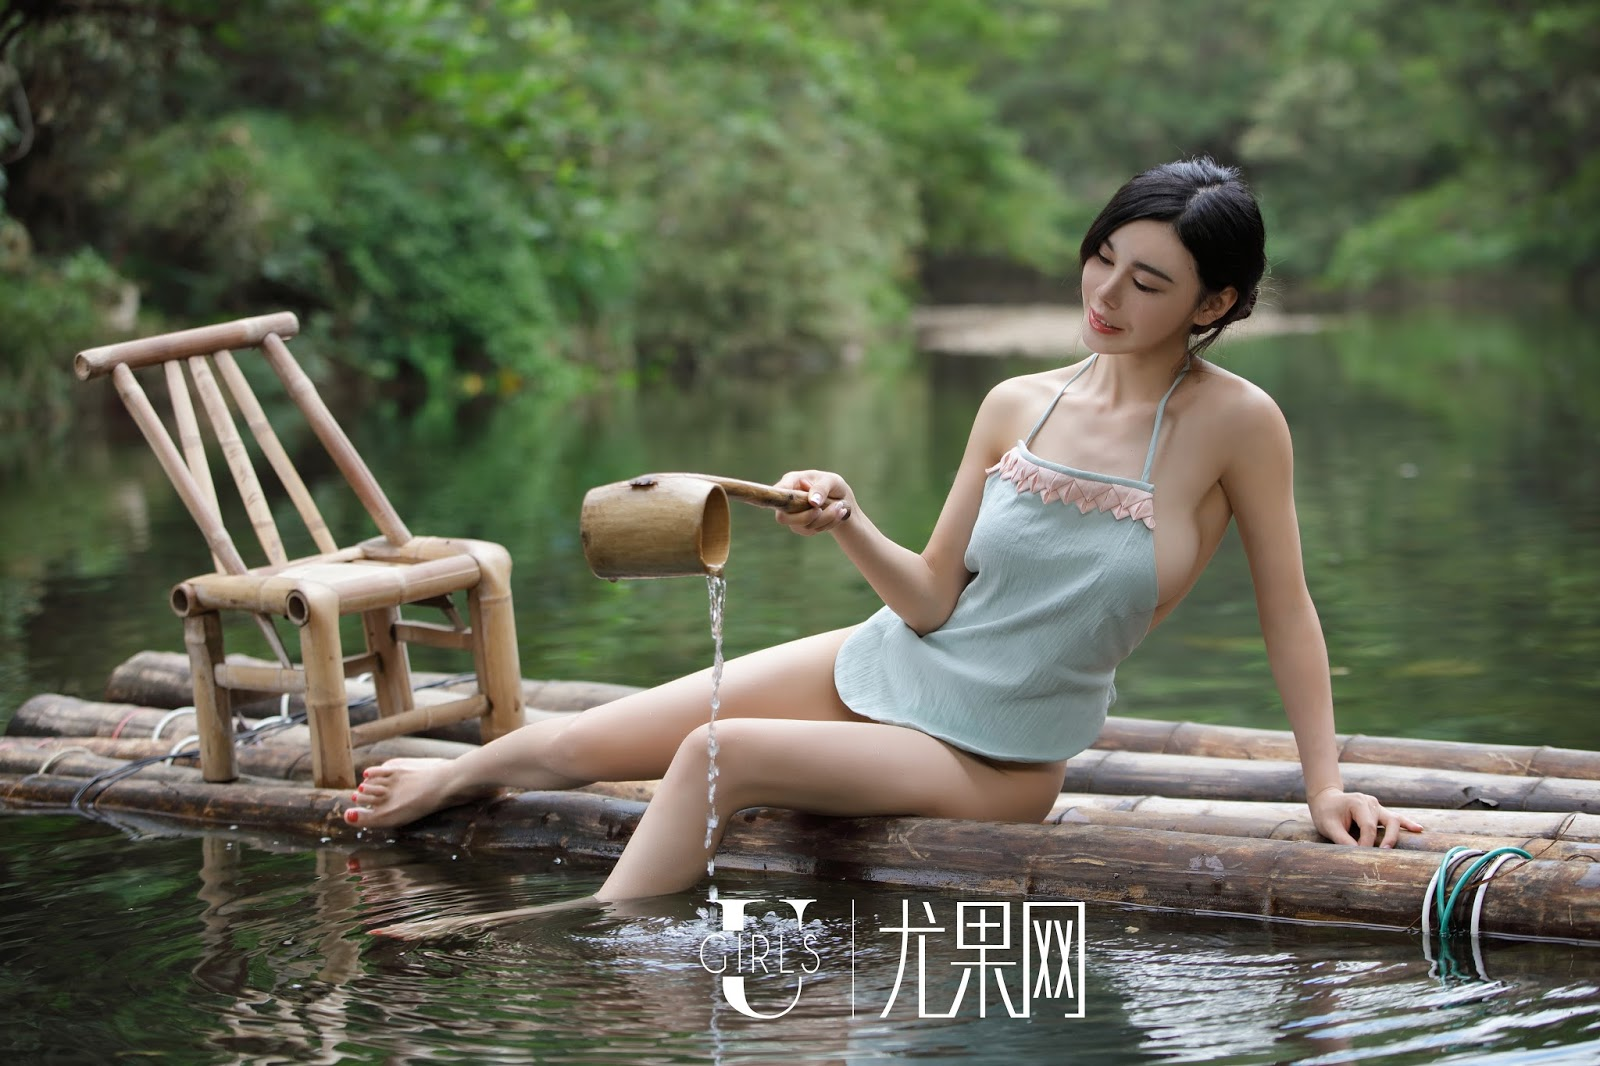 Chinese girl in action, erotic infantism stories